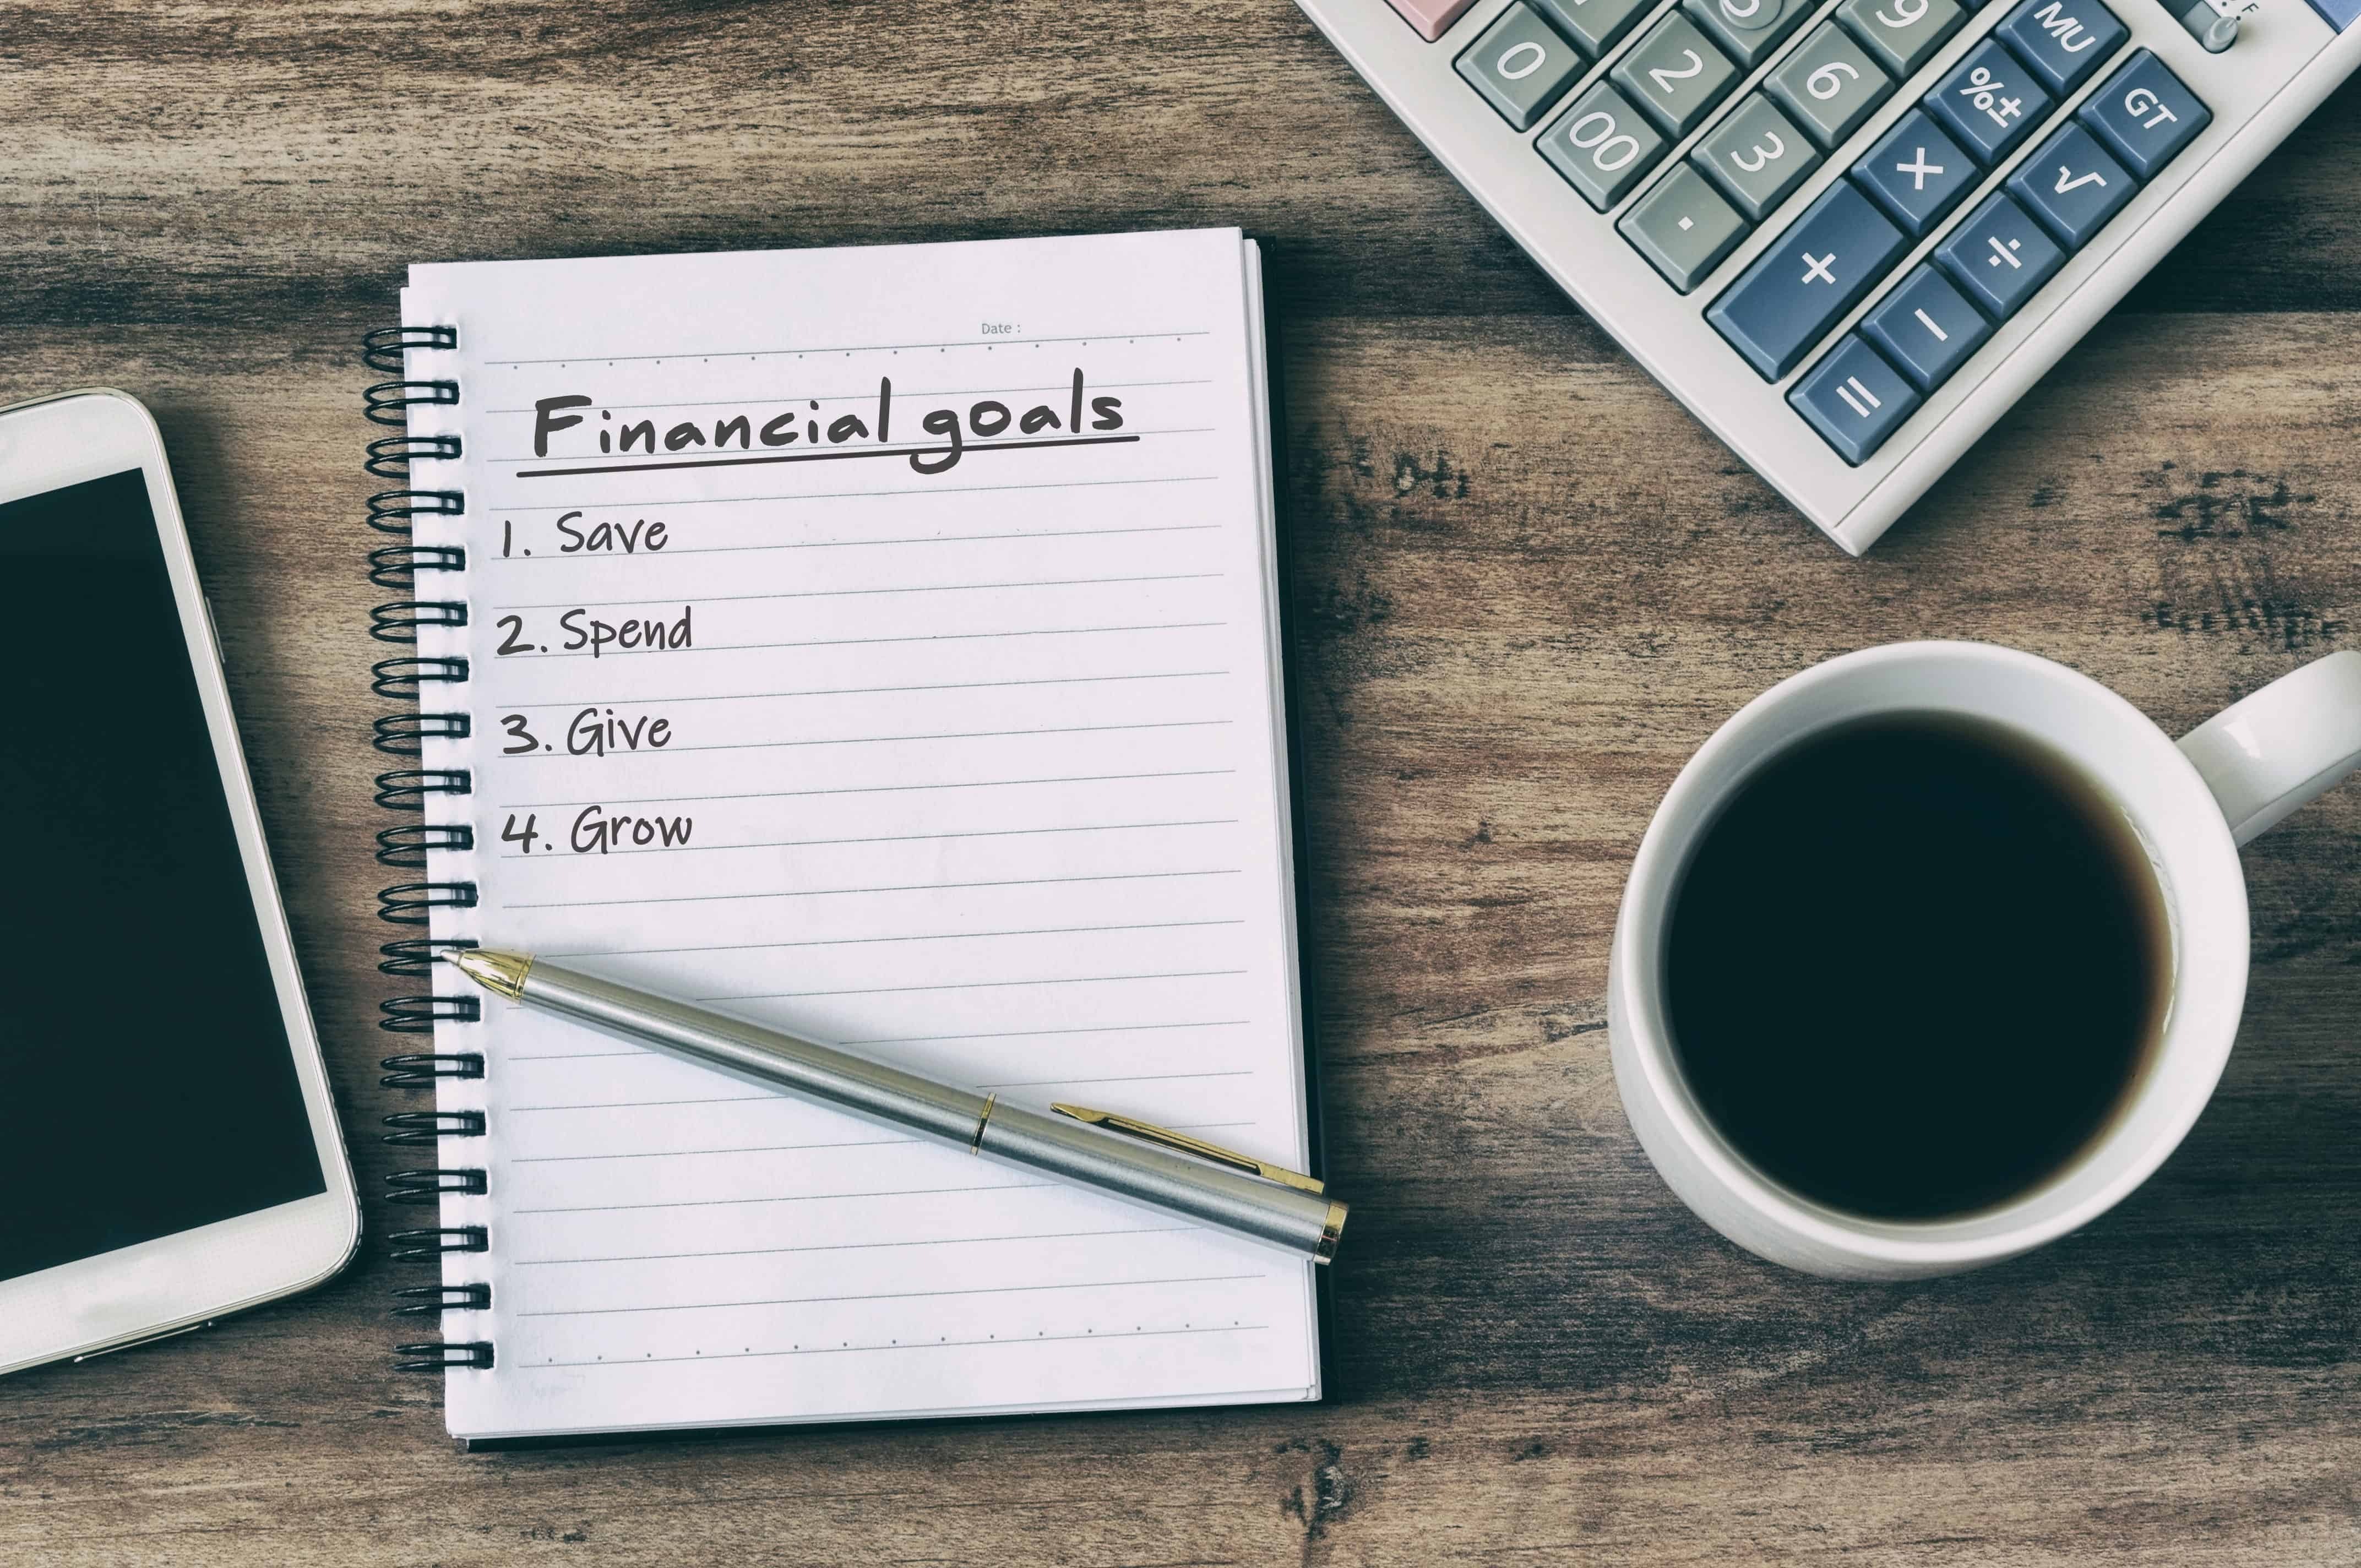 """Focus on four primary goals: """"Save,"""" """"Spend,"""" """"Give,"""" and """"Grow."""""""